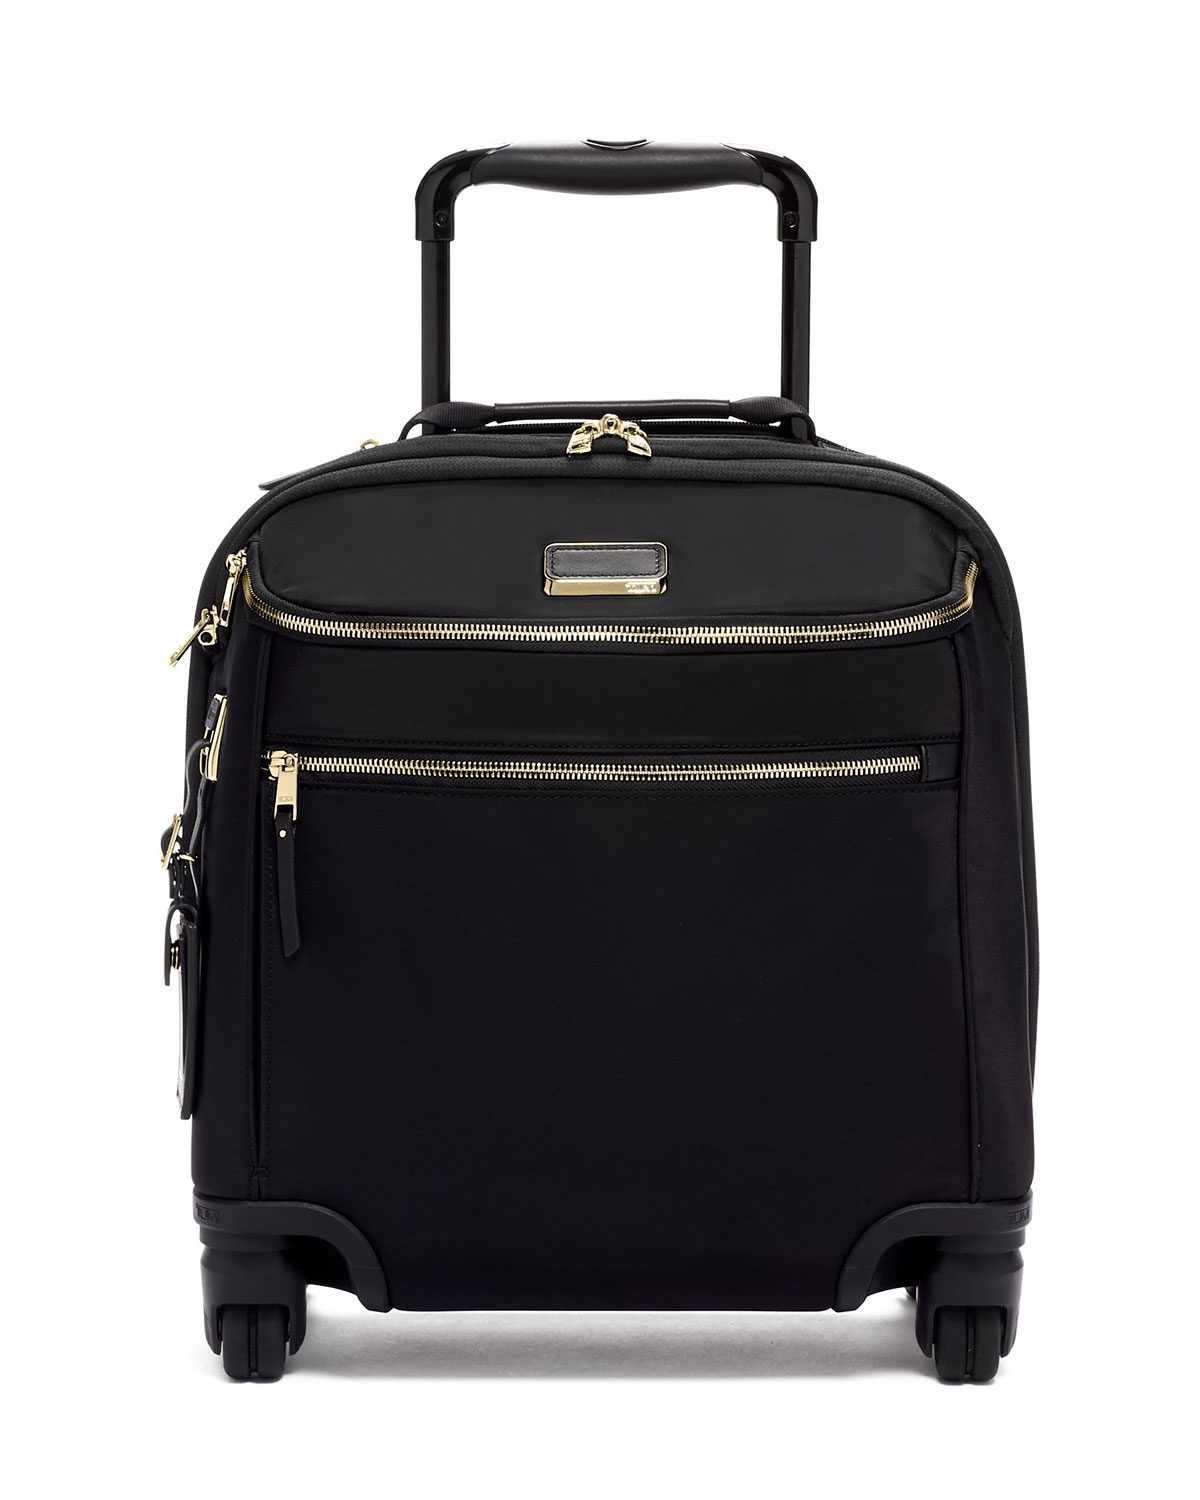 Oxford Compact Carry-On Luggage